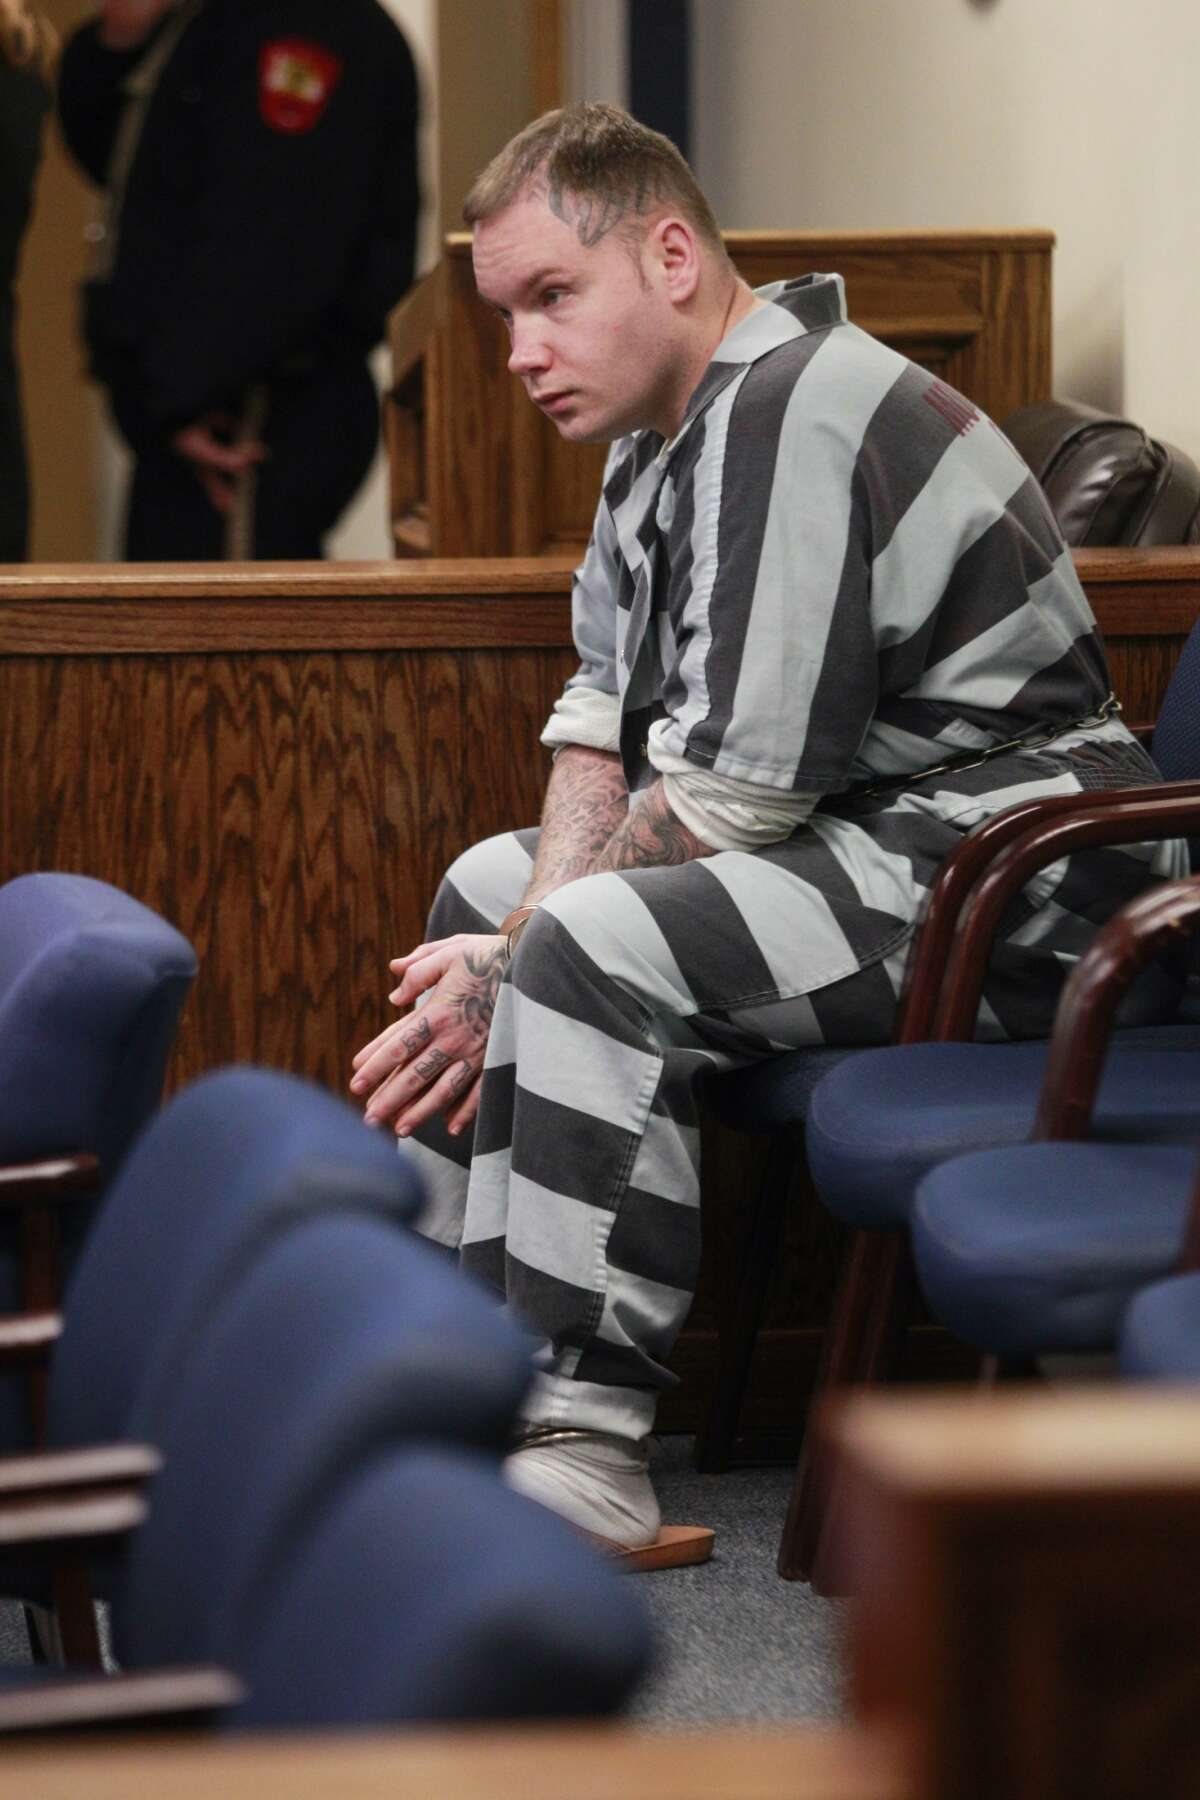 Donald Collins sits in the 359th State District Court on Thursday, March 6, 2014, in Conroe waiting to be transported after Judge Kathleen Hamilton ruled that he will be tried as an adult for allegedly setting 8-year-old Robert Middleton on fire with gasoline in 1998. Robert died in 2011.